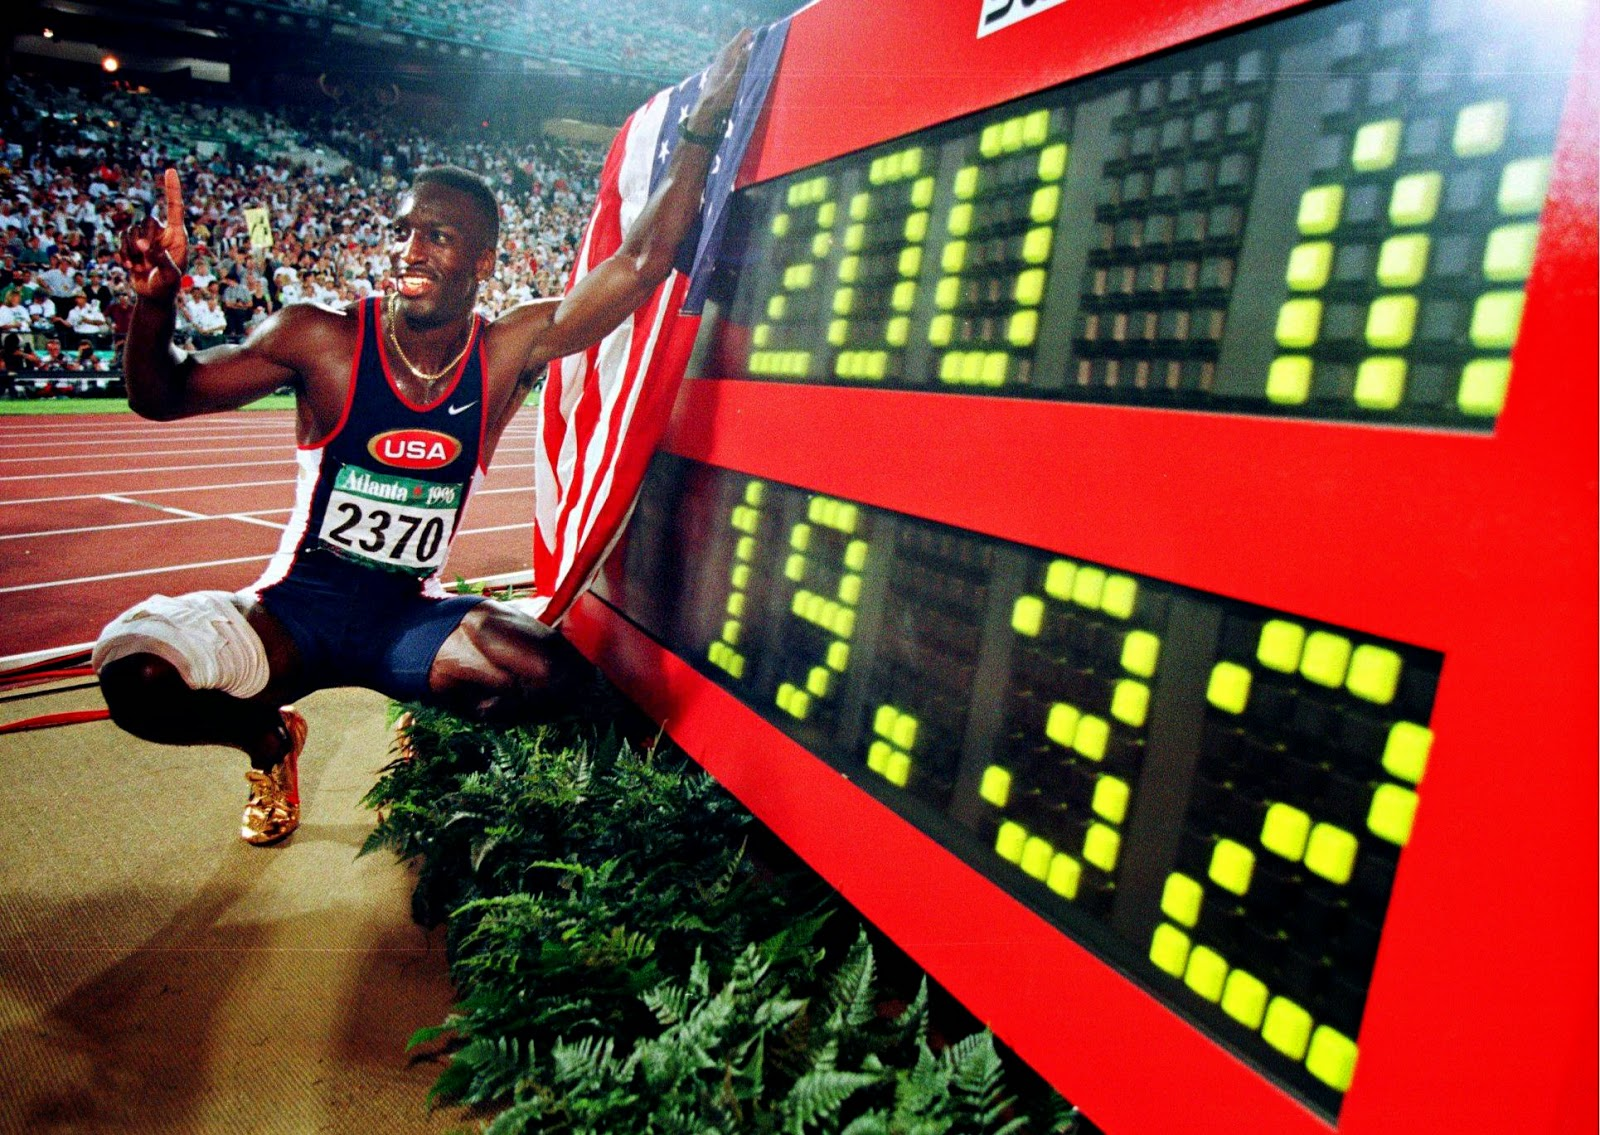 Michael Johnson. Record olímpico en 200 metros lisos (Atlanta 96)